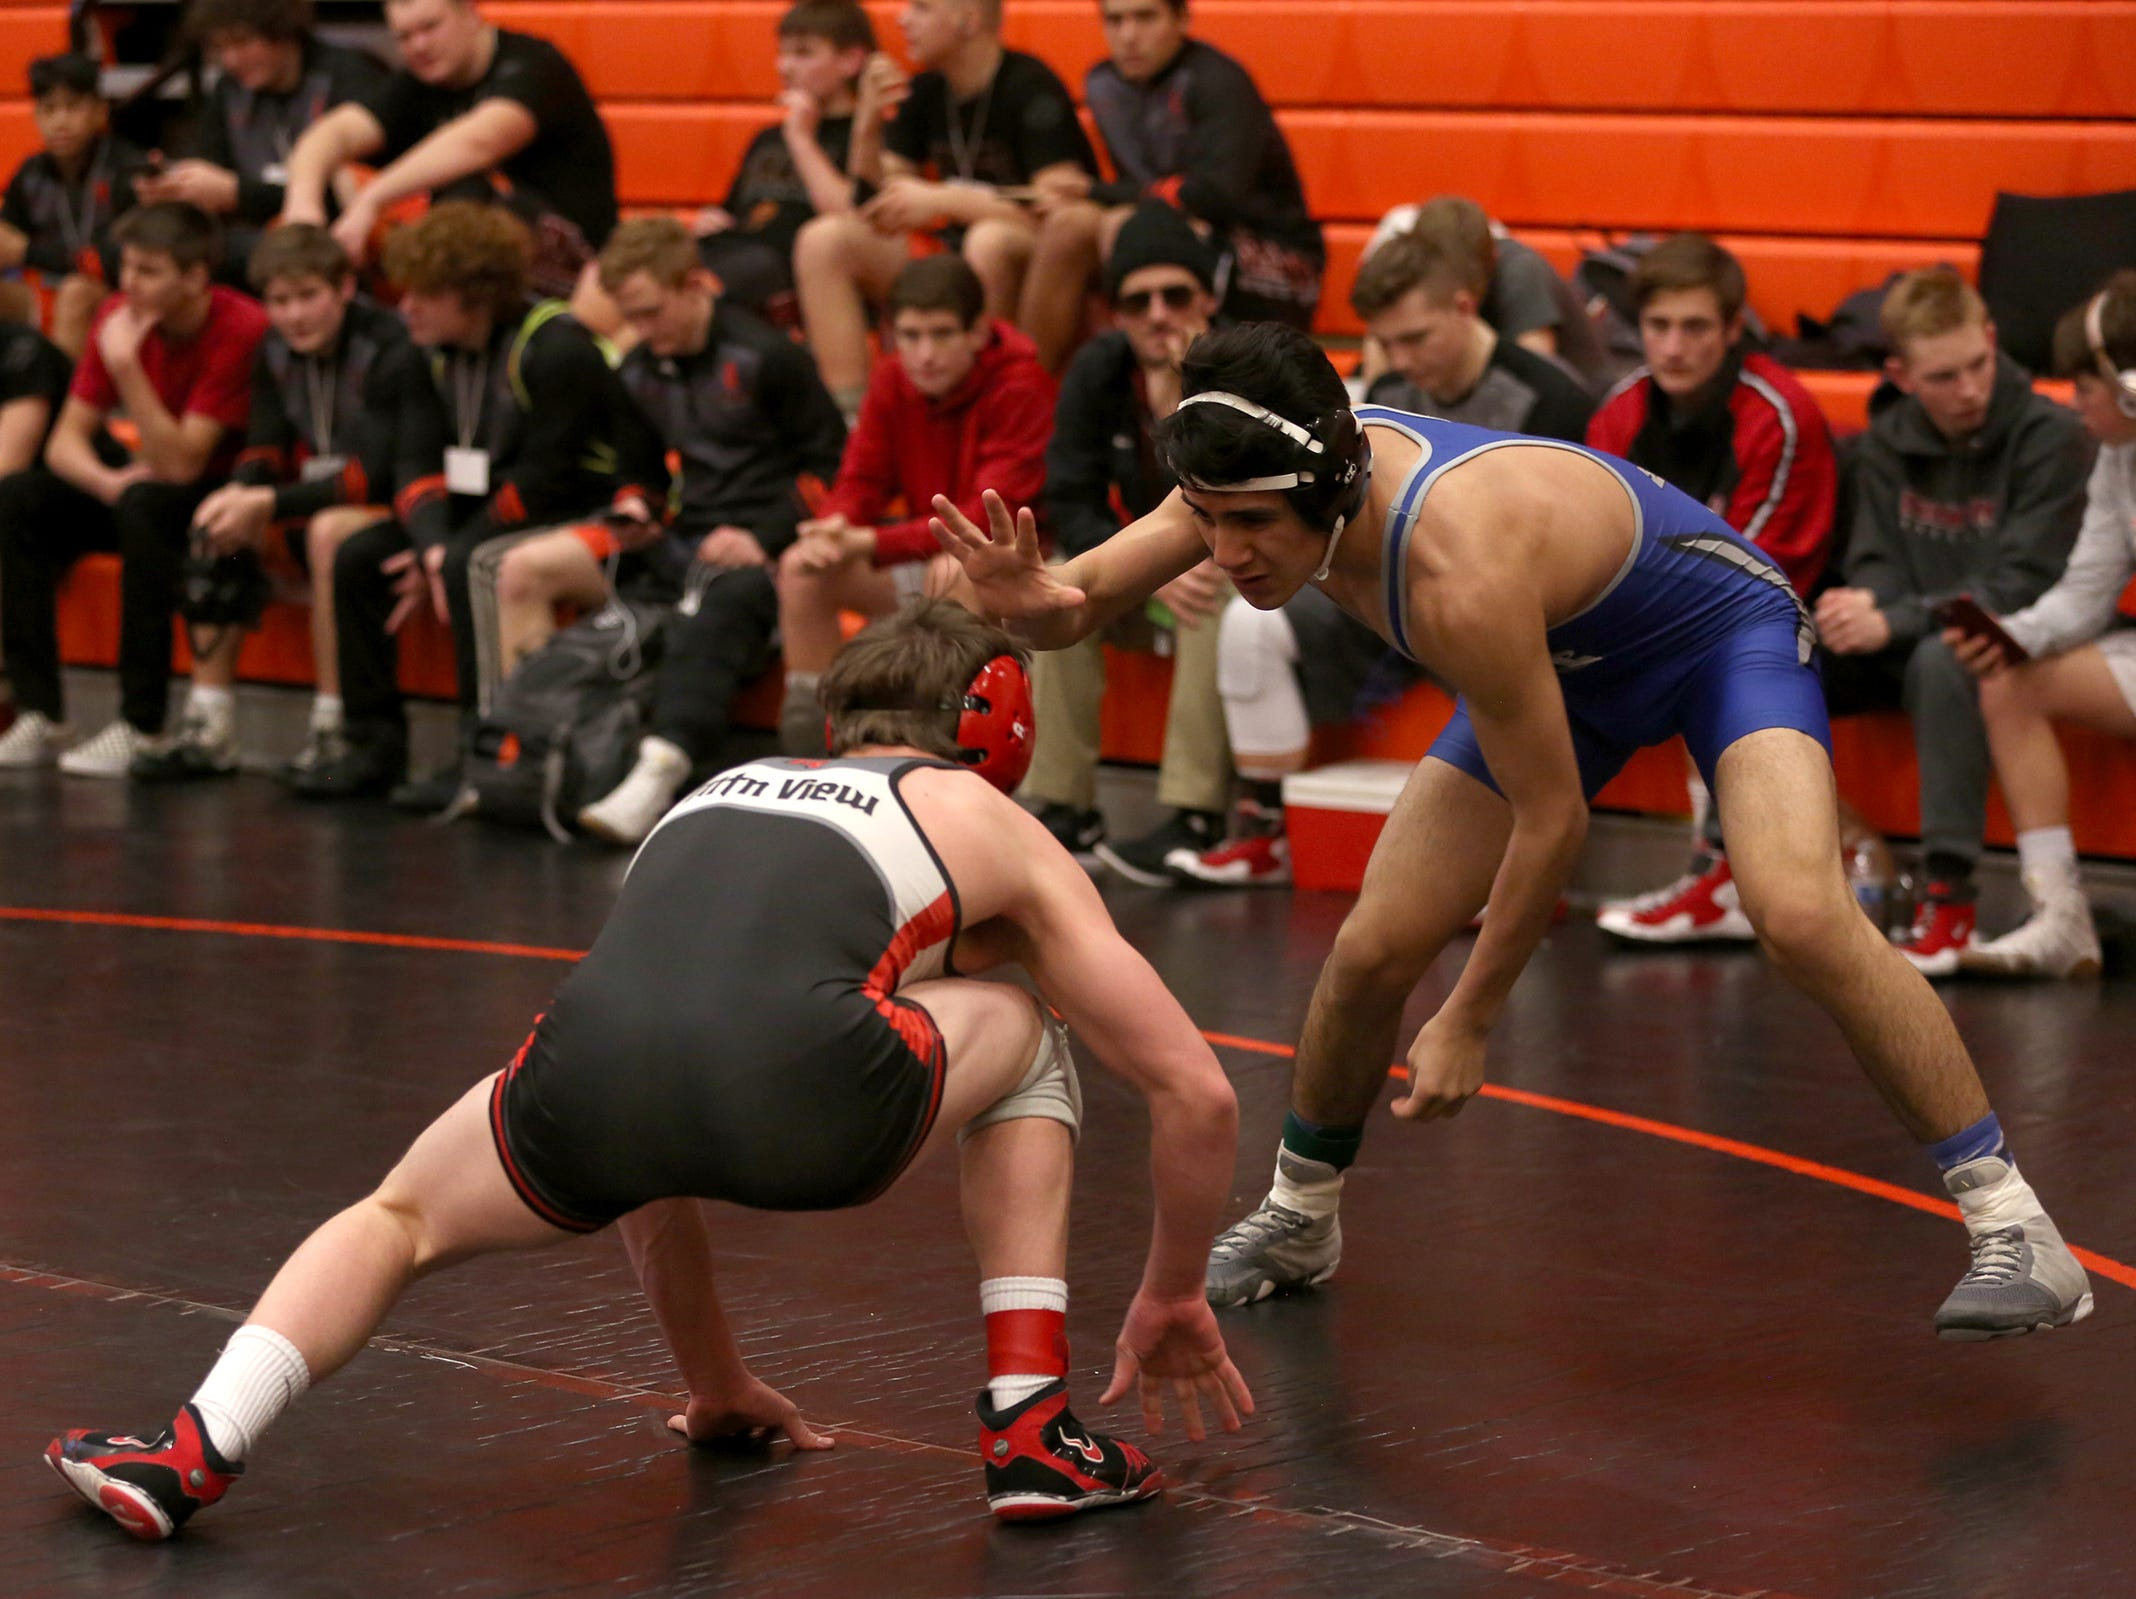 McNary's Giovanni Cervantes (right) takes on Mountain View's Beau Olson as they compete in the 138 pound weight class during the Mountain Valley Conference district wrestling tournament at Sprague High School in Salem on Friday, Feb. 15, 2019.